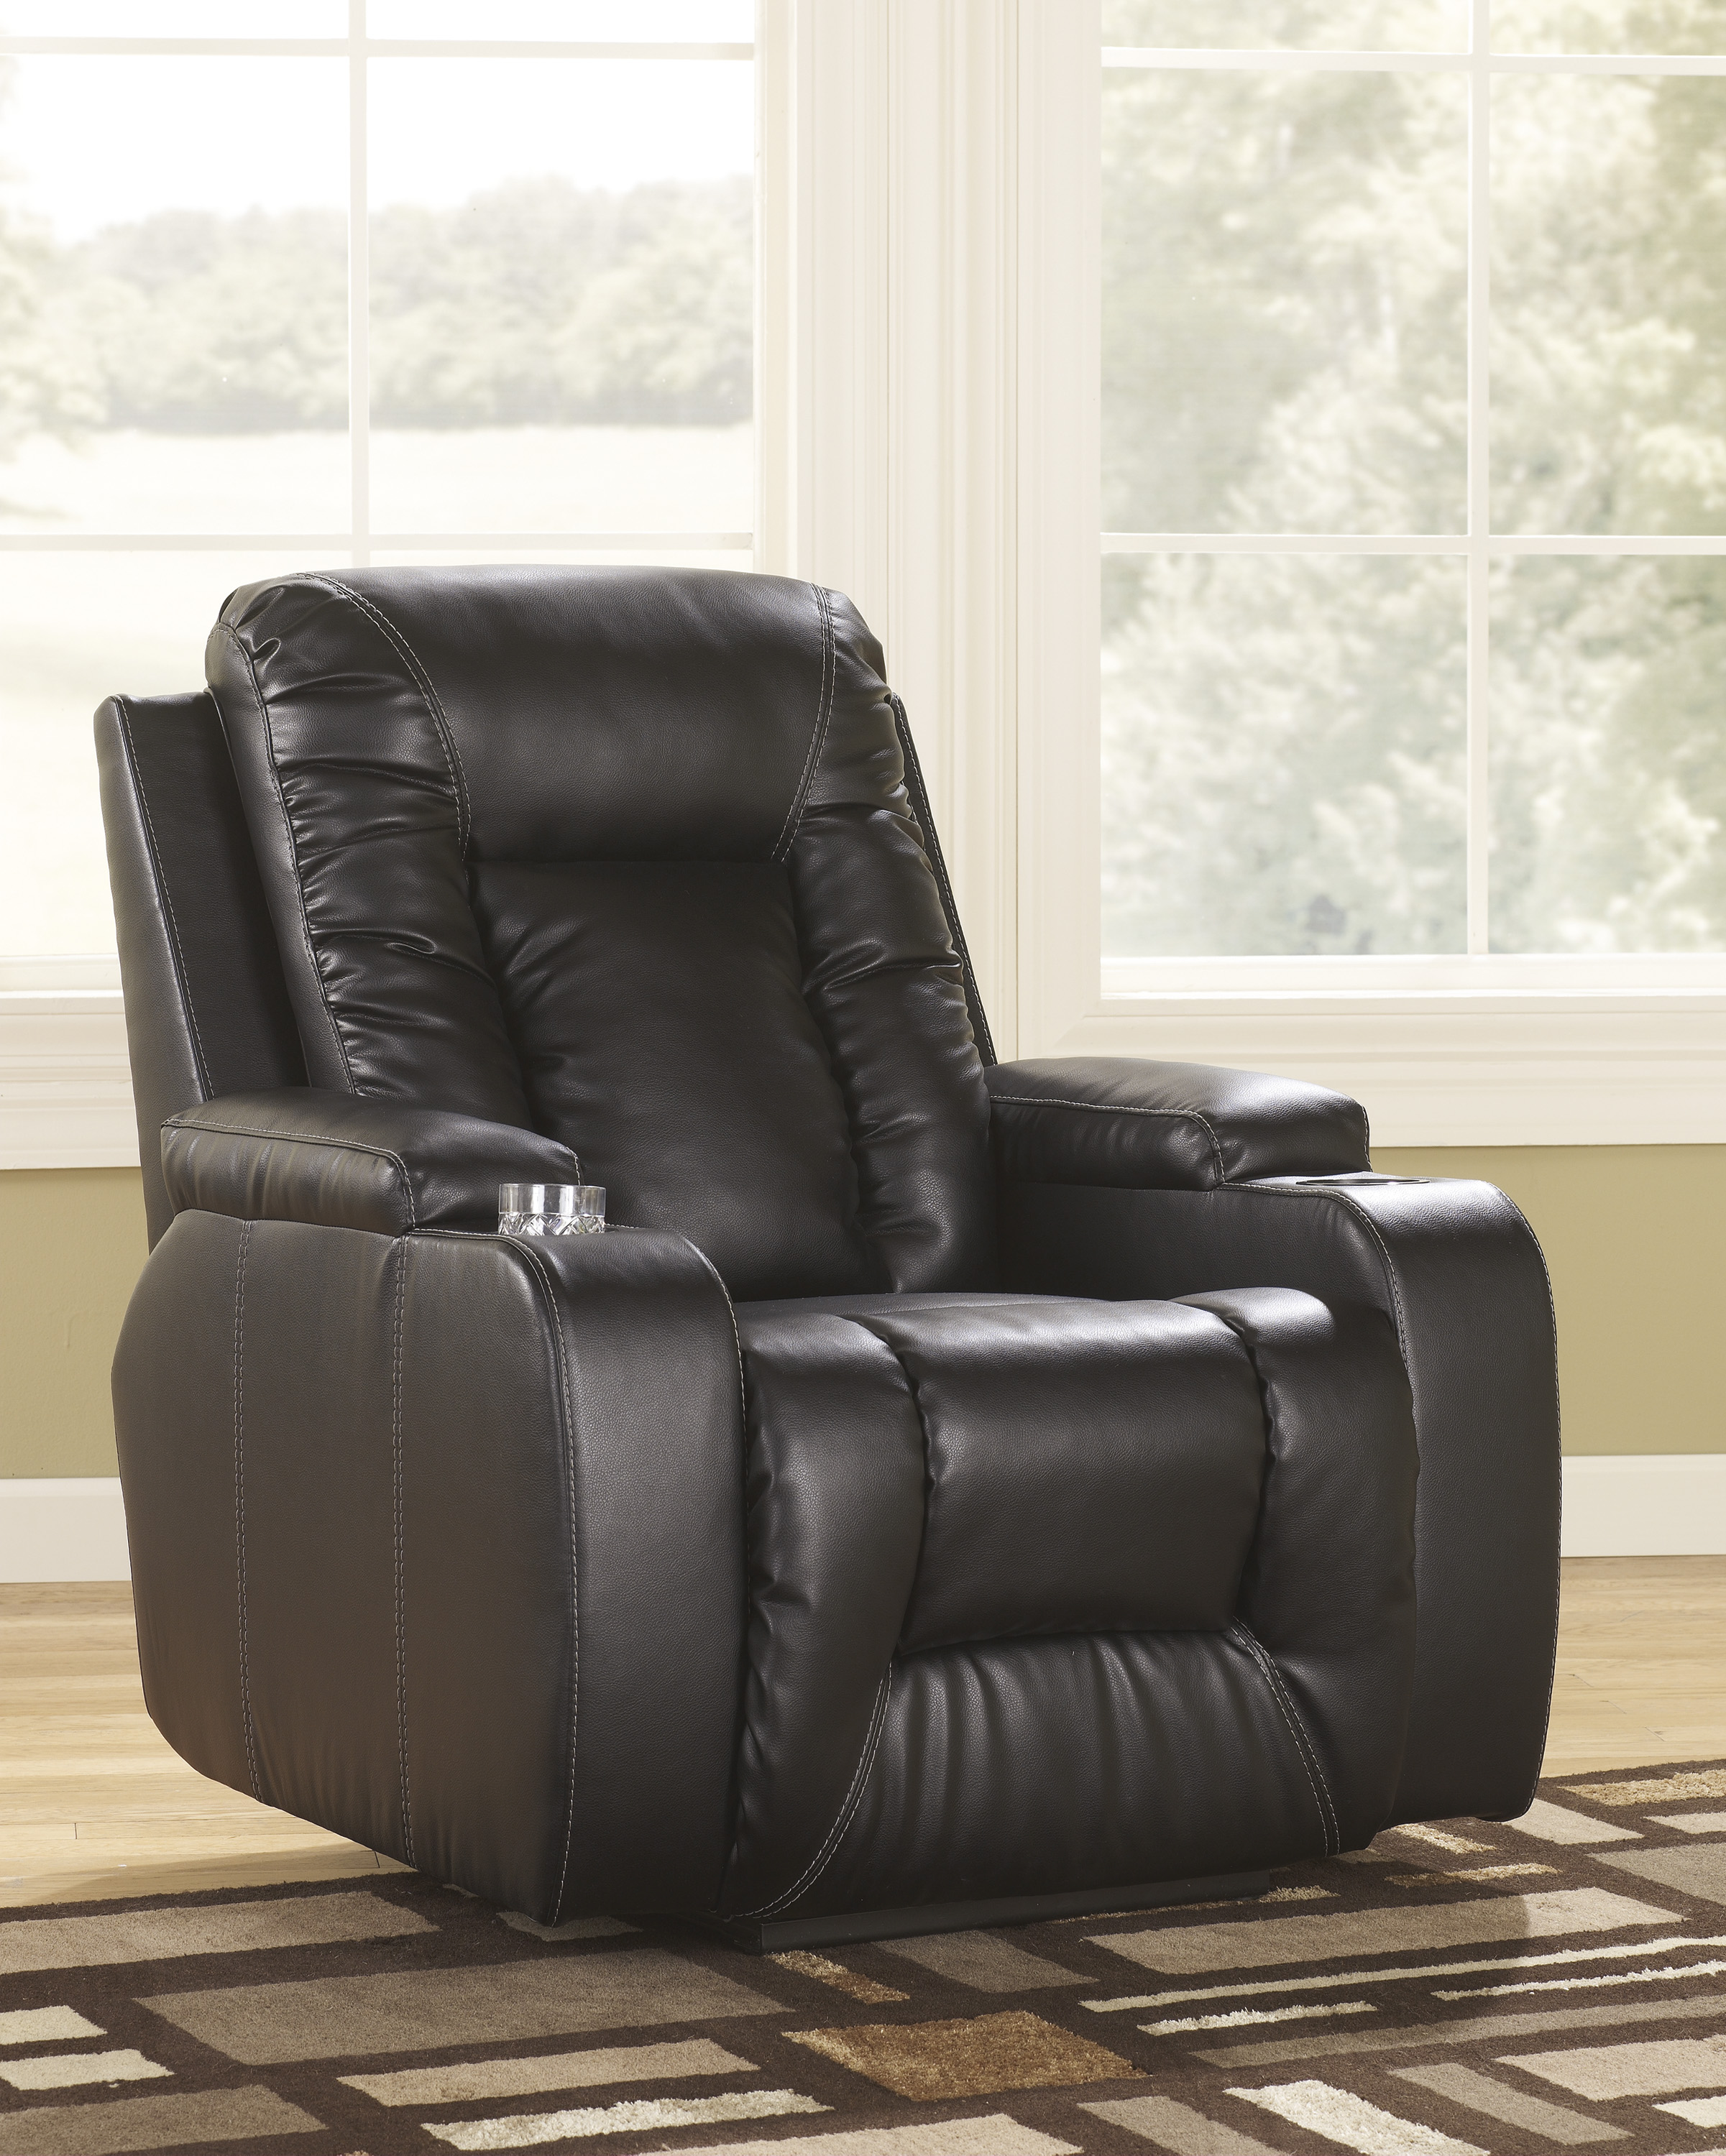 Ashley Furniture Recliner Chairs Ashley Matinee Power Recliner